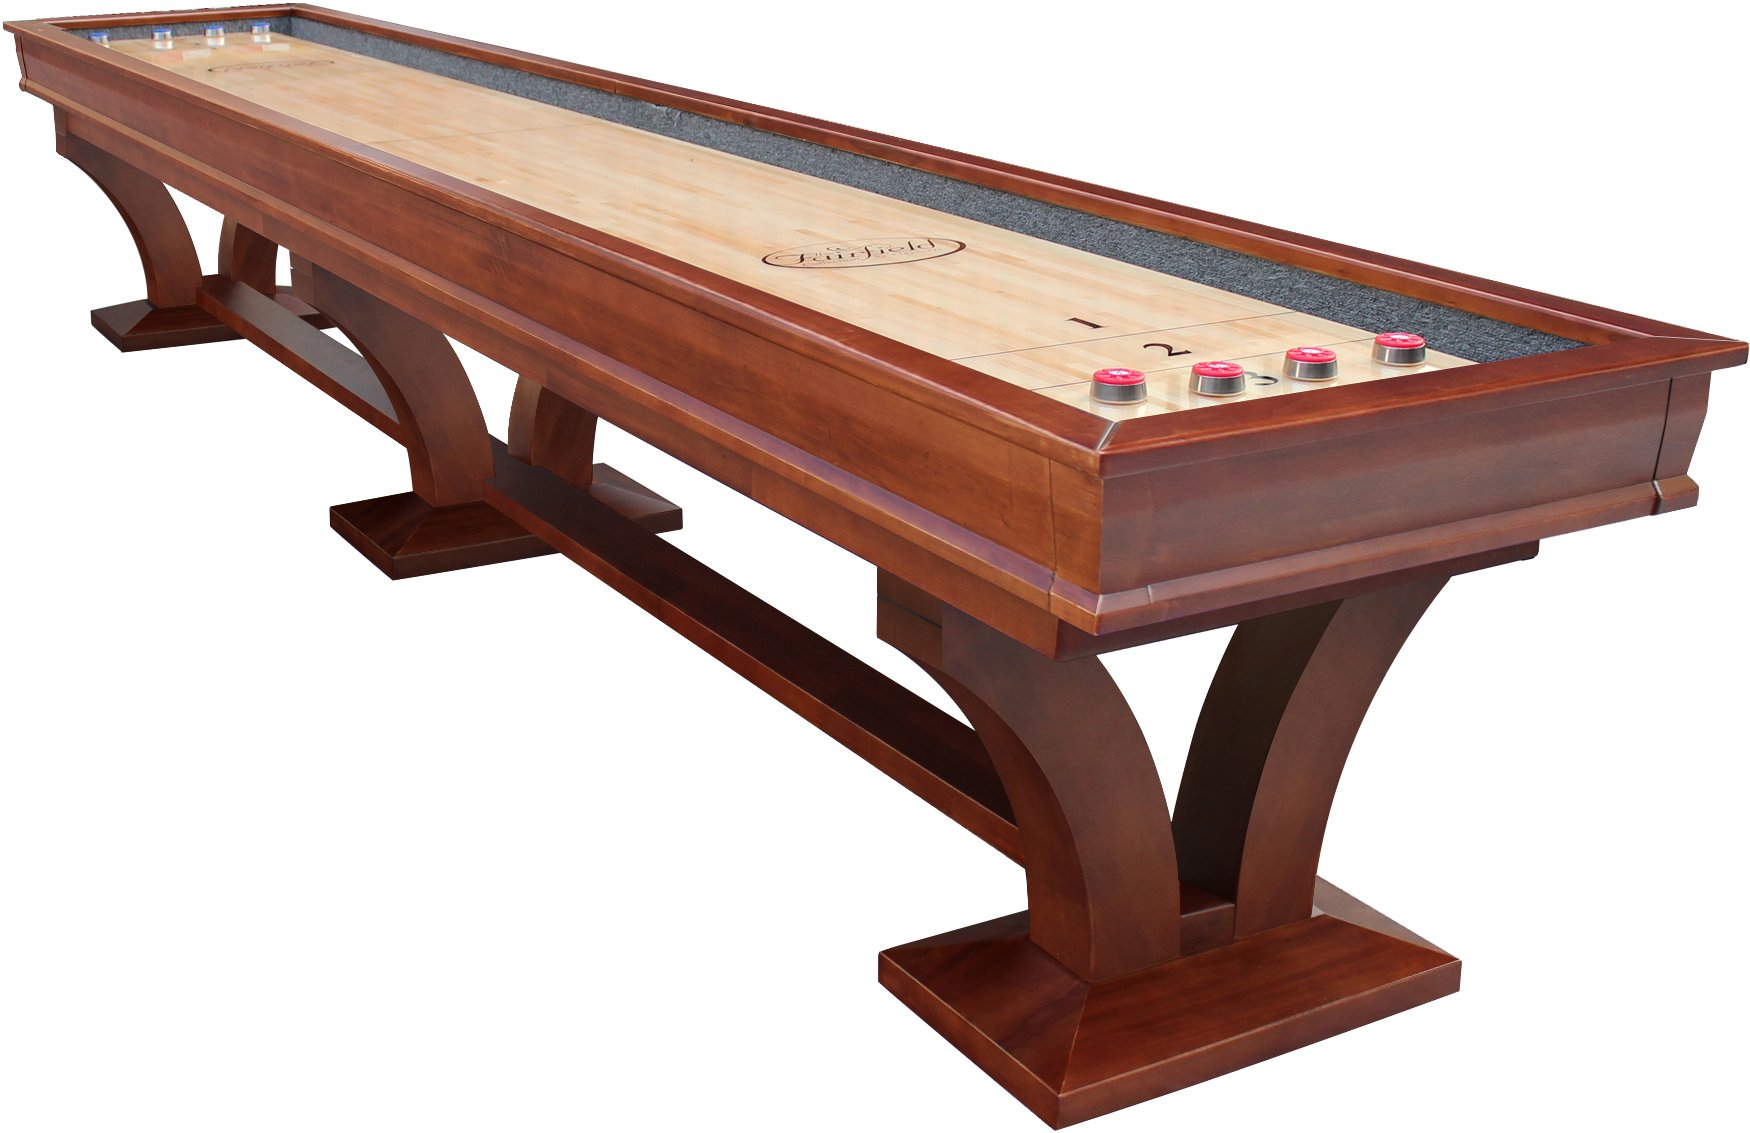 Playcraft Columbia River 16' Pro-Style Shuffleboard Table, Chestnut by Playcraft